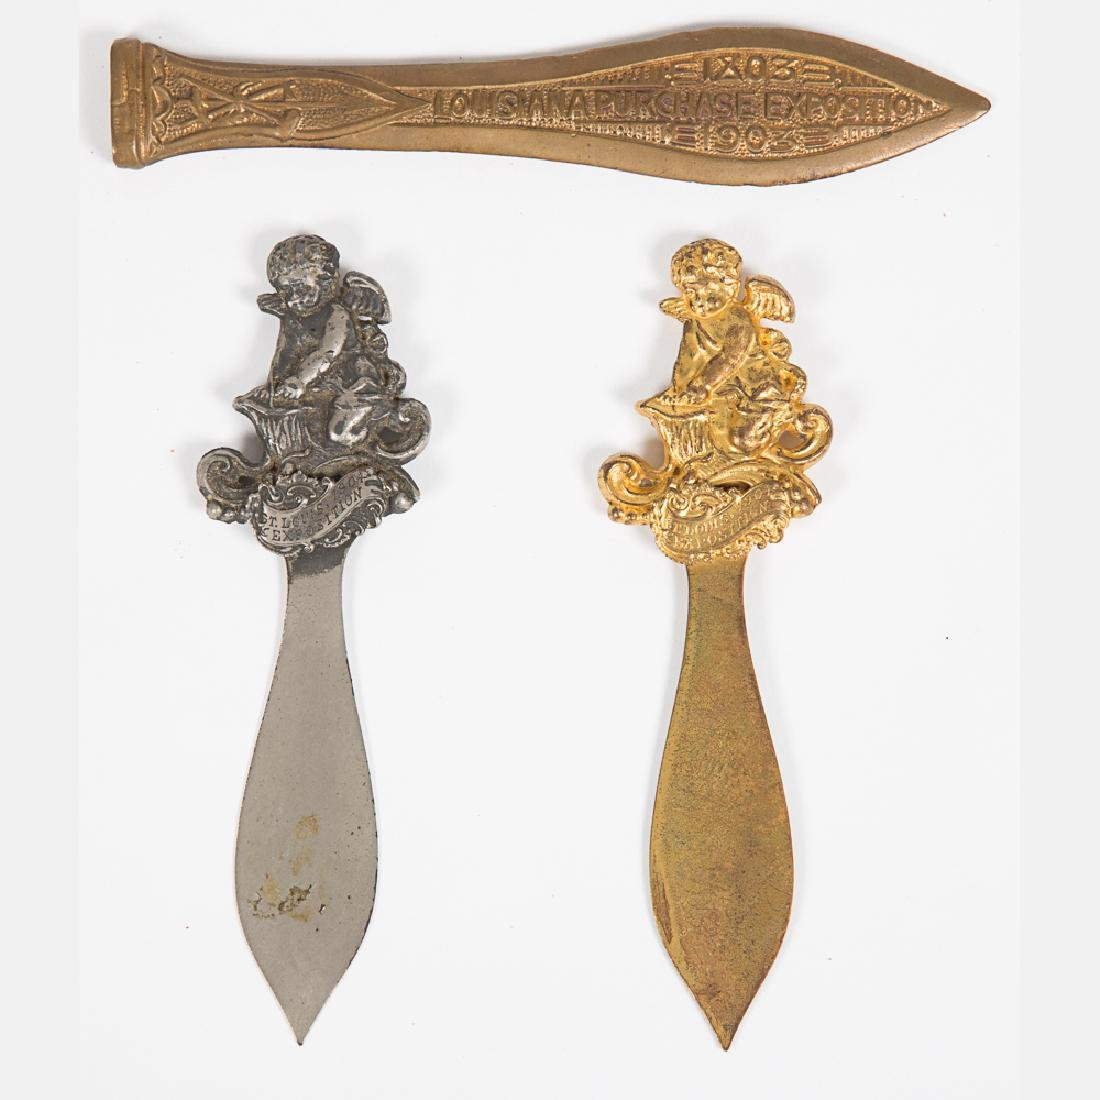 Two Gilt and Nickel Letter Openers from the Louisiana